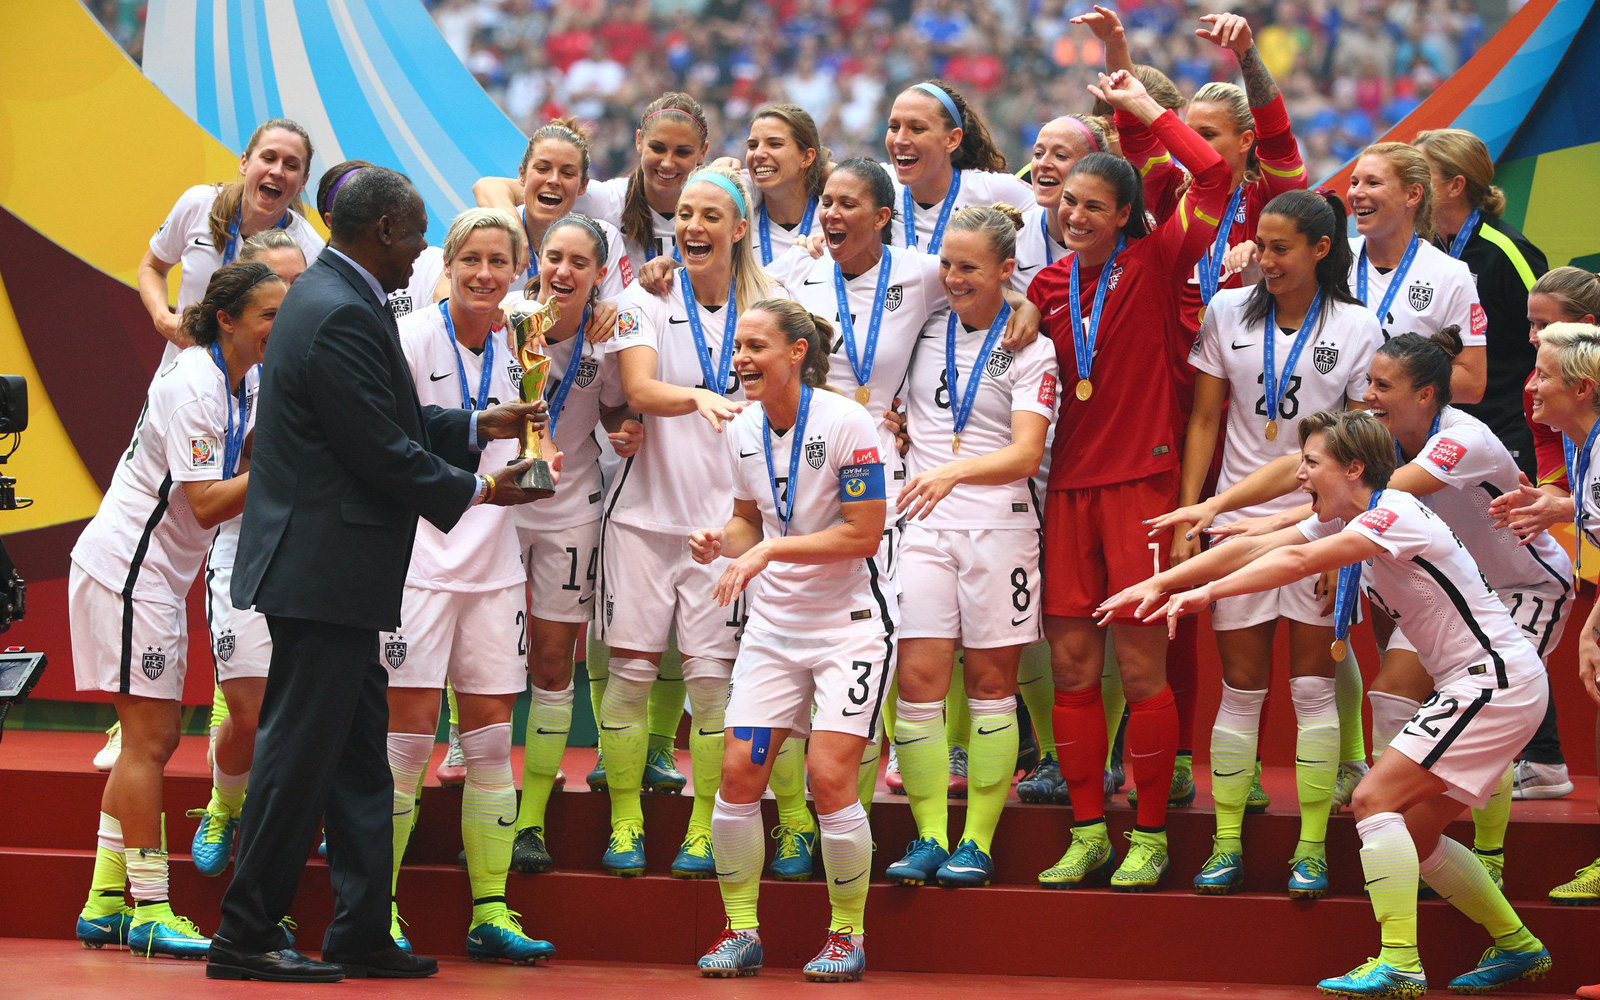 The U.S. women's team waits with anticipation as Christie Rampone is presented with the World Cup trophy